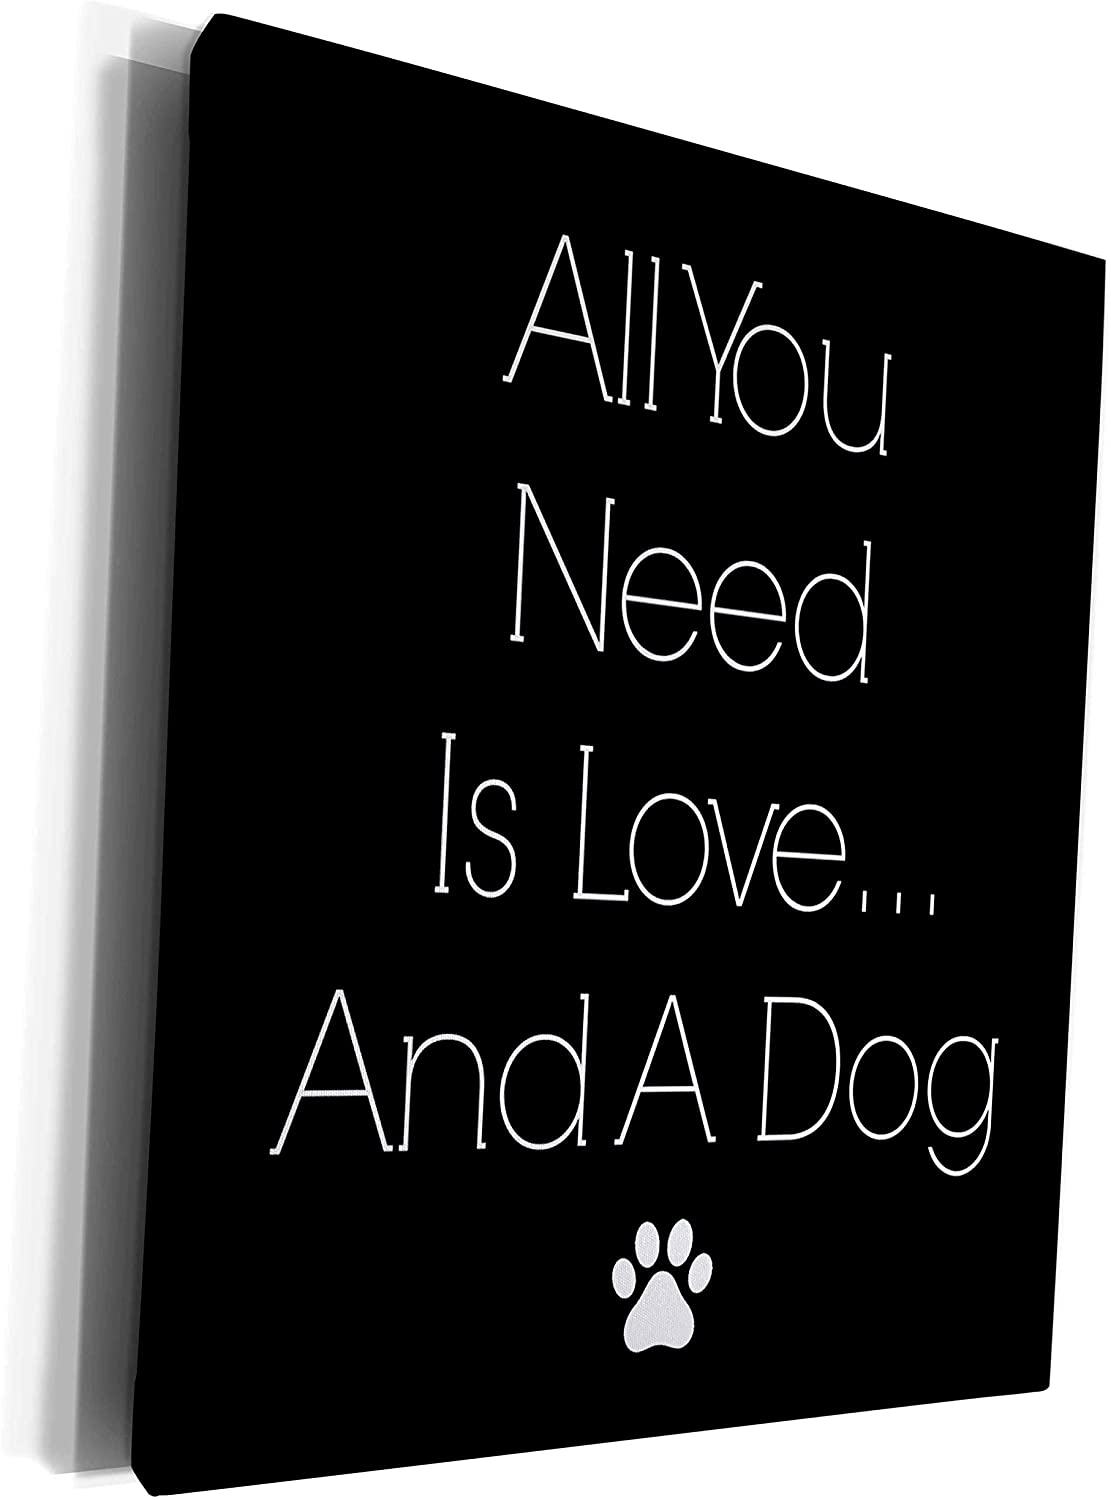 3dRose BrooklynMeme Pets - All you need is love and a dog white print on a black background - Museum Grade Canvas Wrap (cw_221874_1)